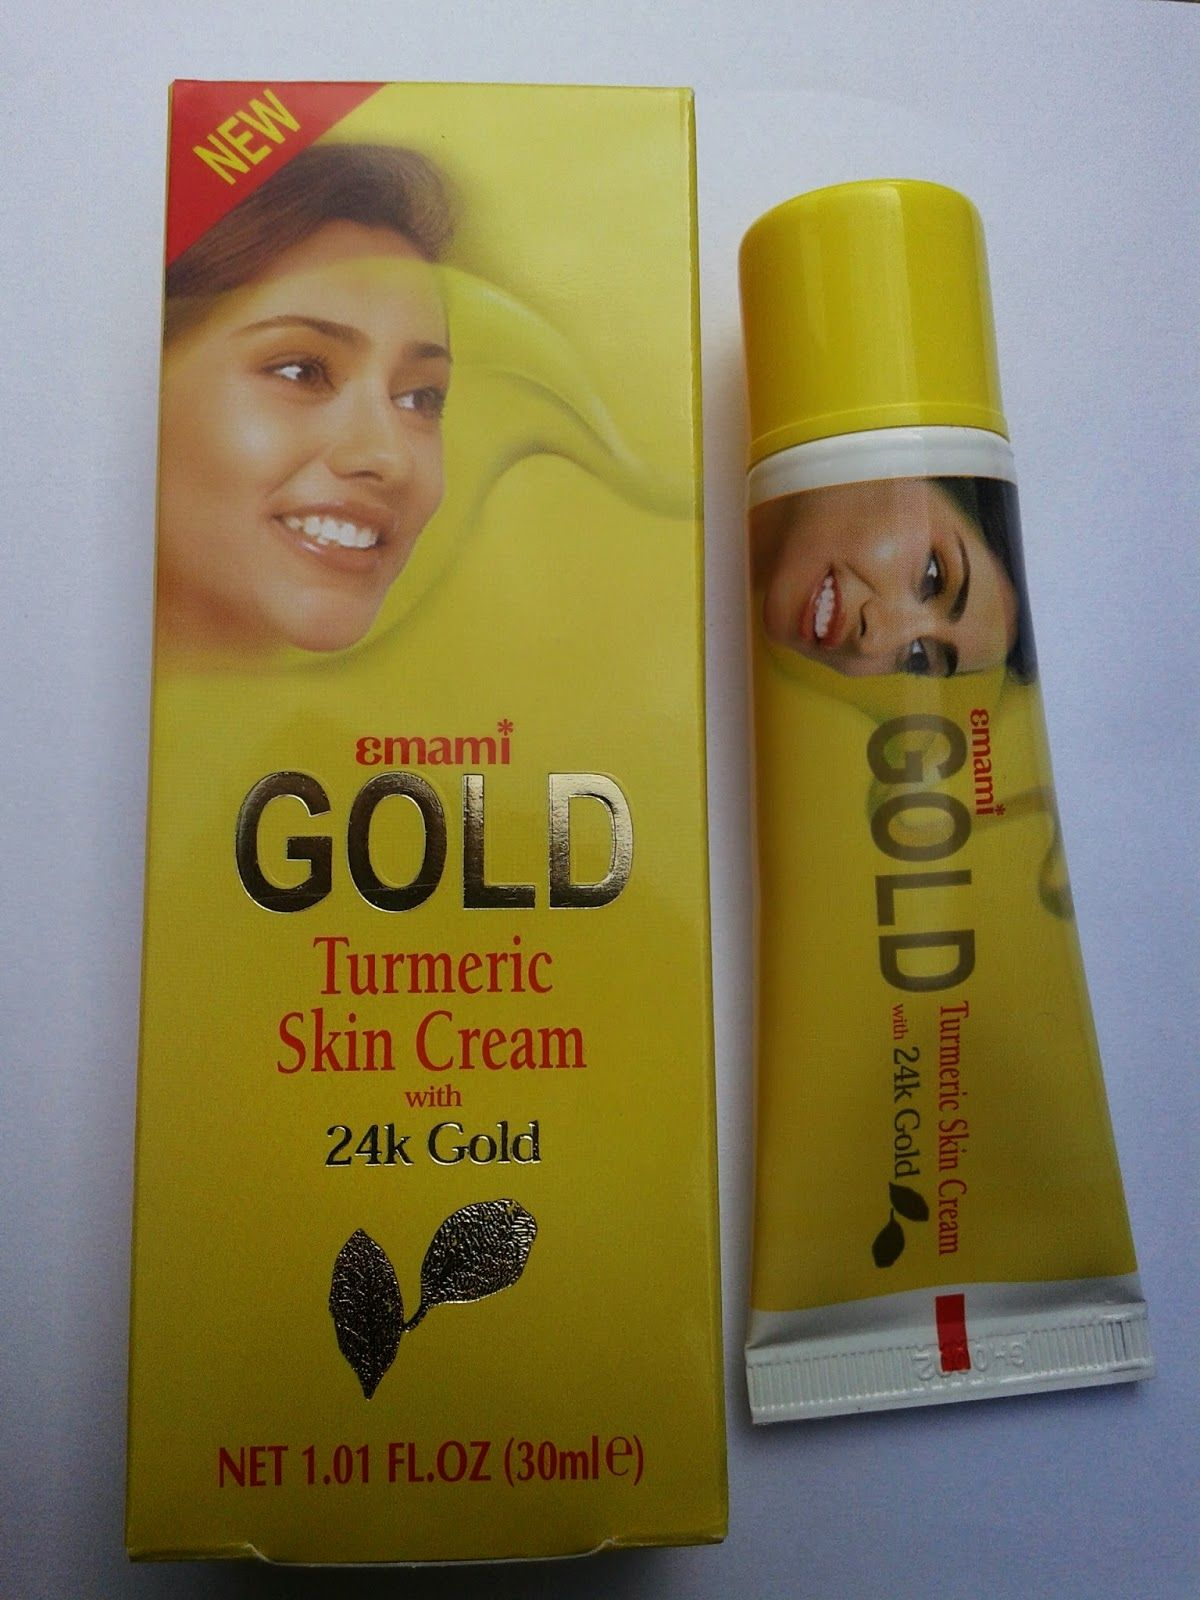 Emami Gold Turmeric Skin Lightening Cream 30ml 24k Gold Natural Herb Extracts Sri Lanka Mall Skin Lightening Cream Lightening Creams Turmeric Skin Lightening